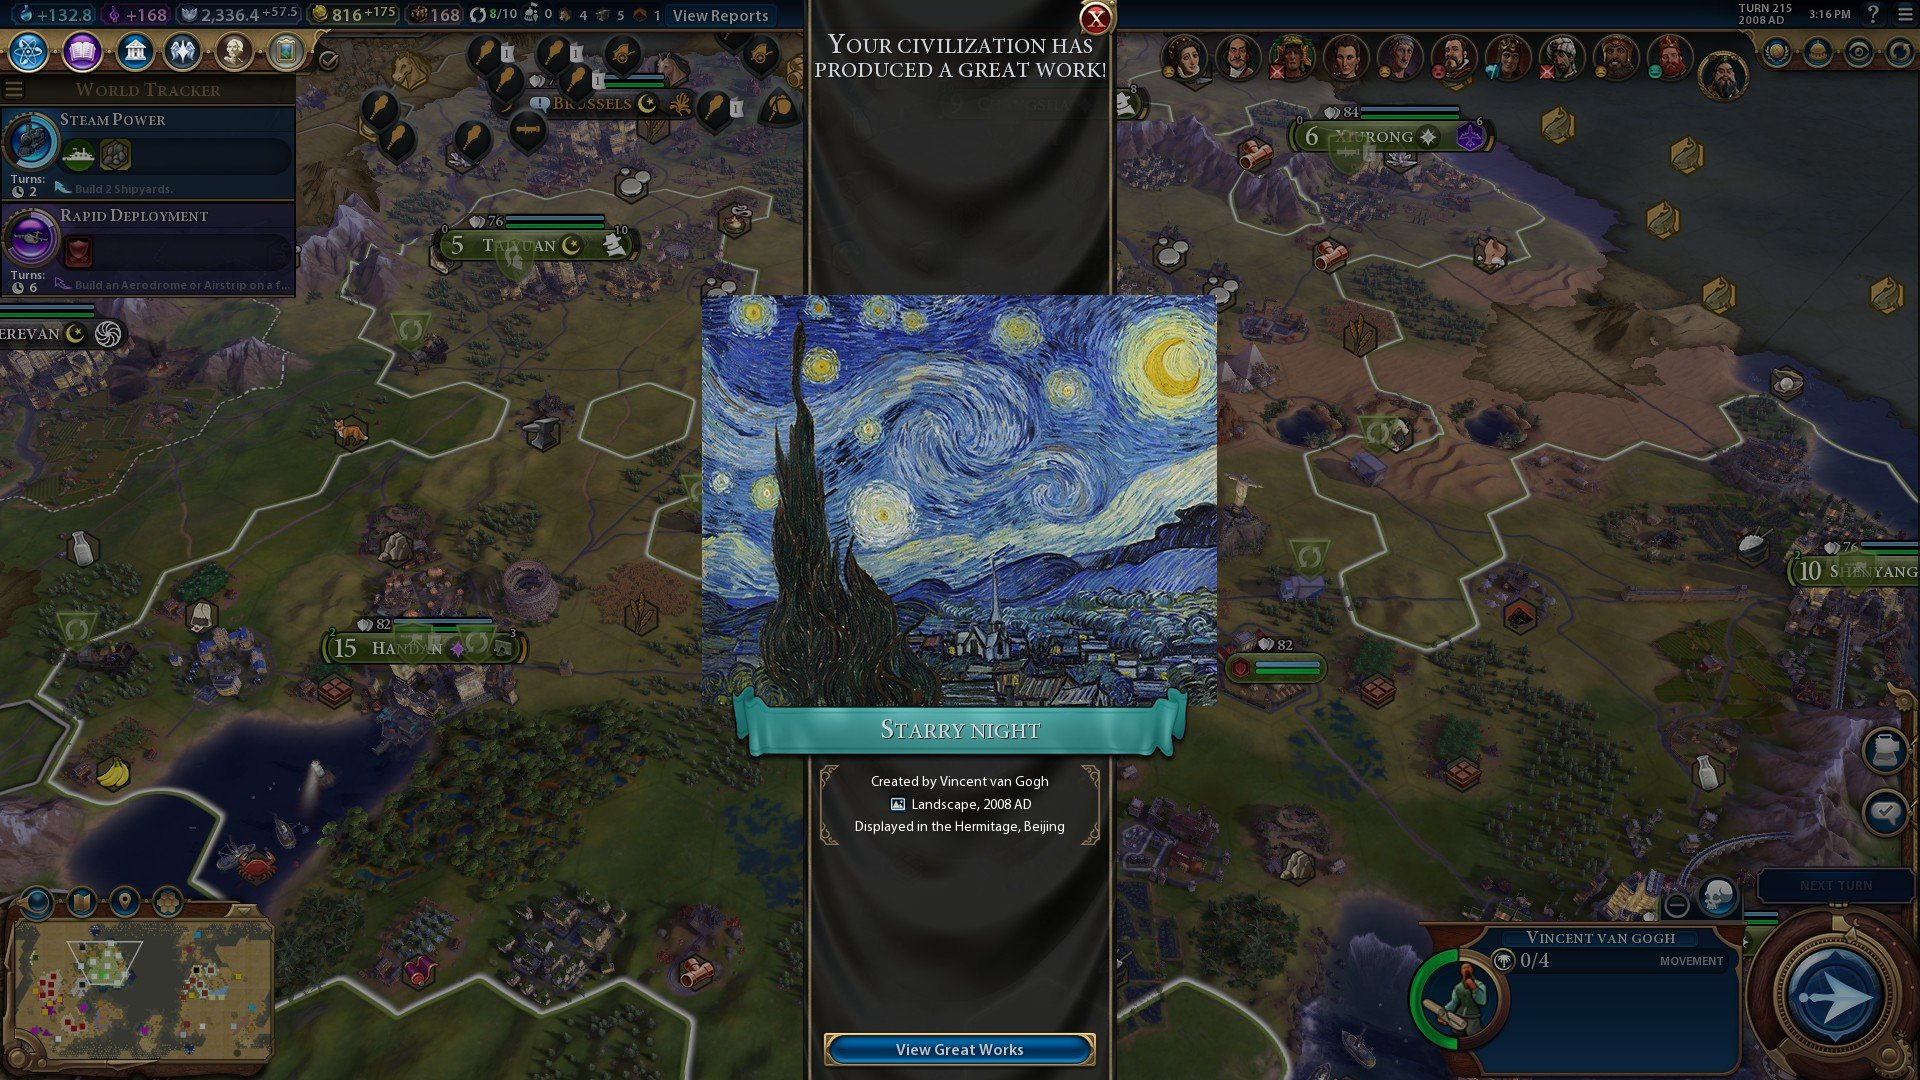 Review: Civilization VI